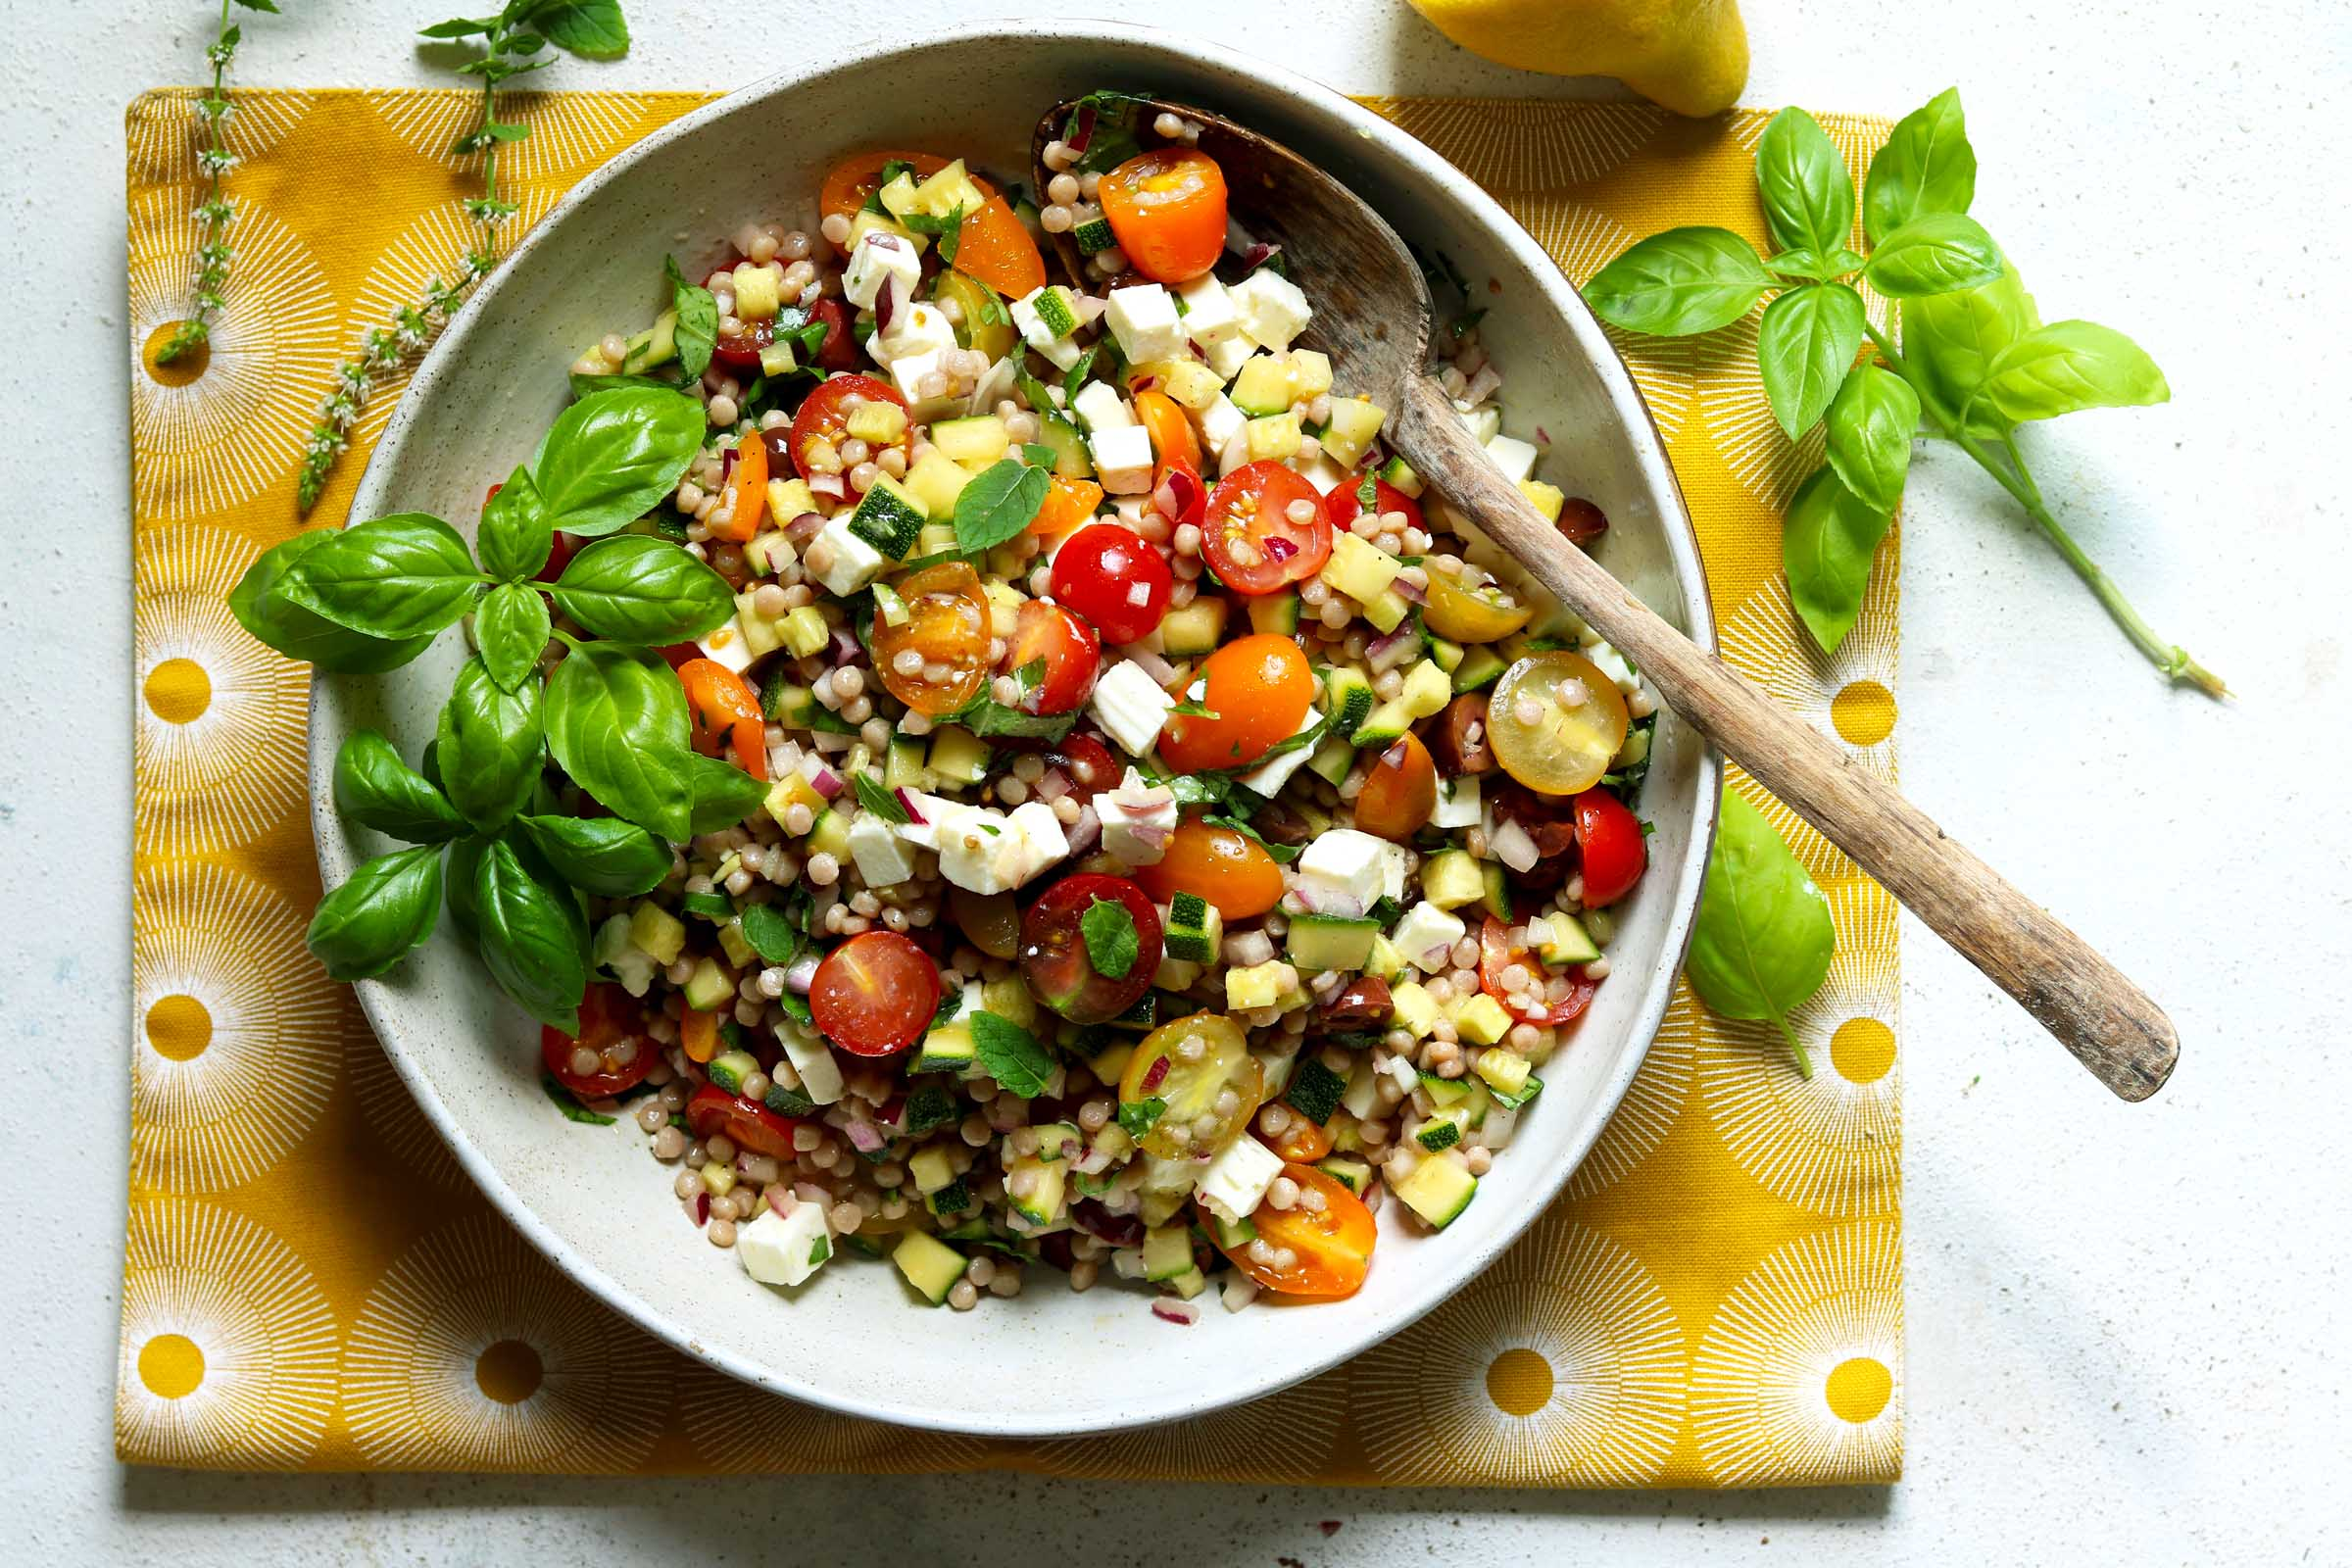 Mediterranean Couscous Salad - The Last Food Blog